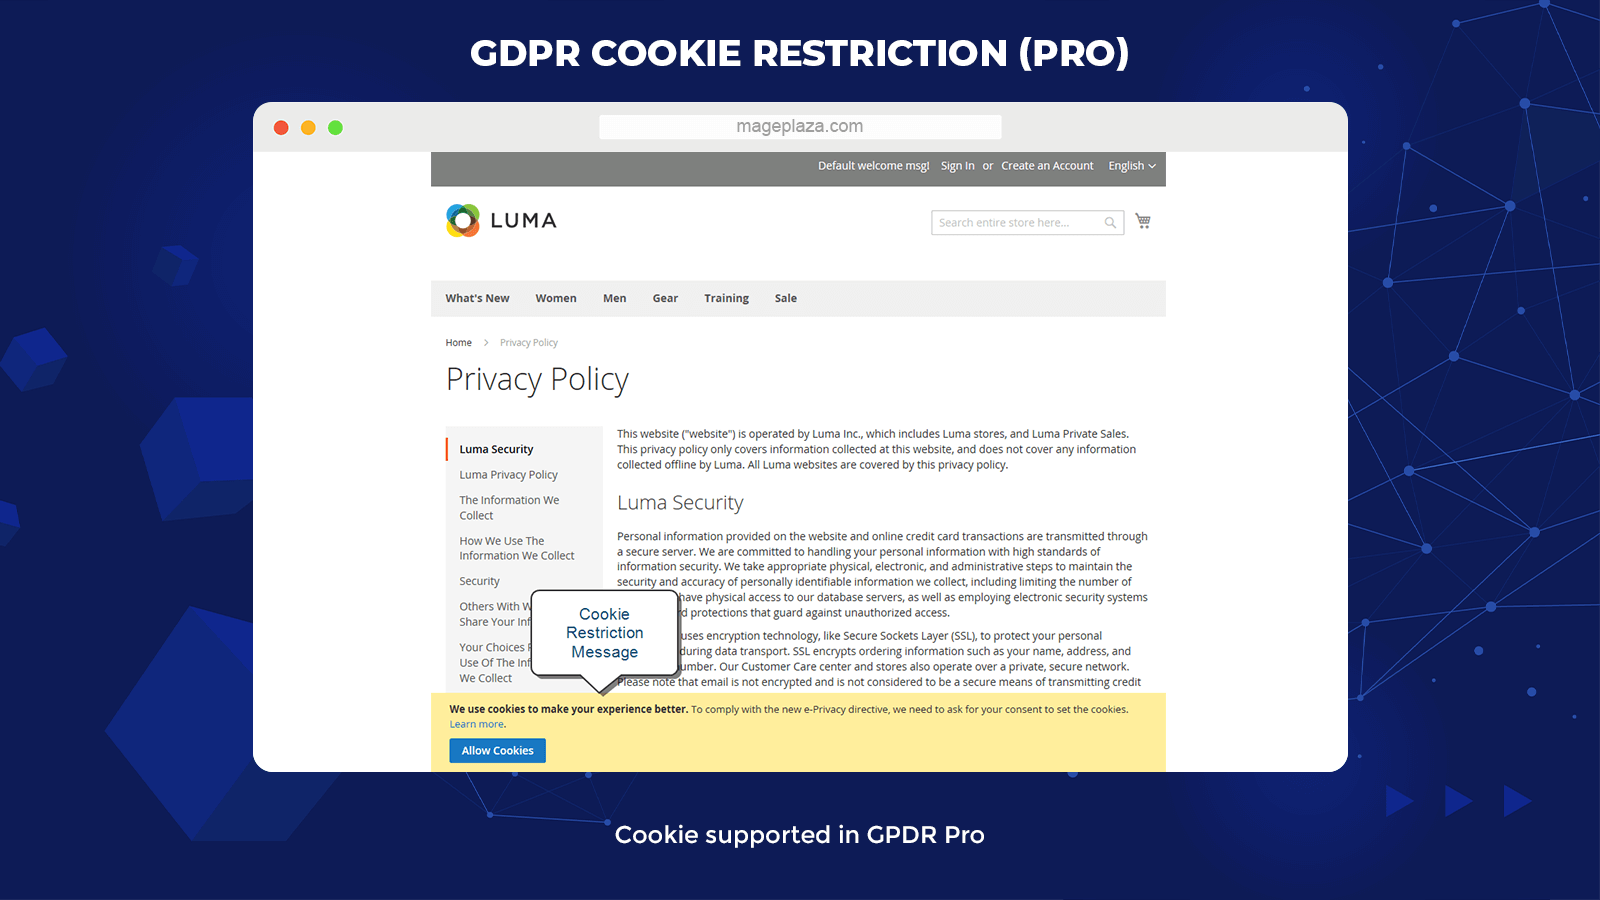 Magento 2 GDPR Pro Cookie restriction